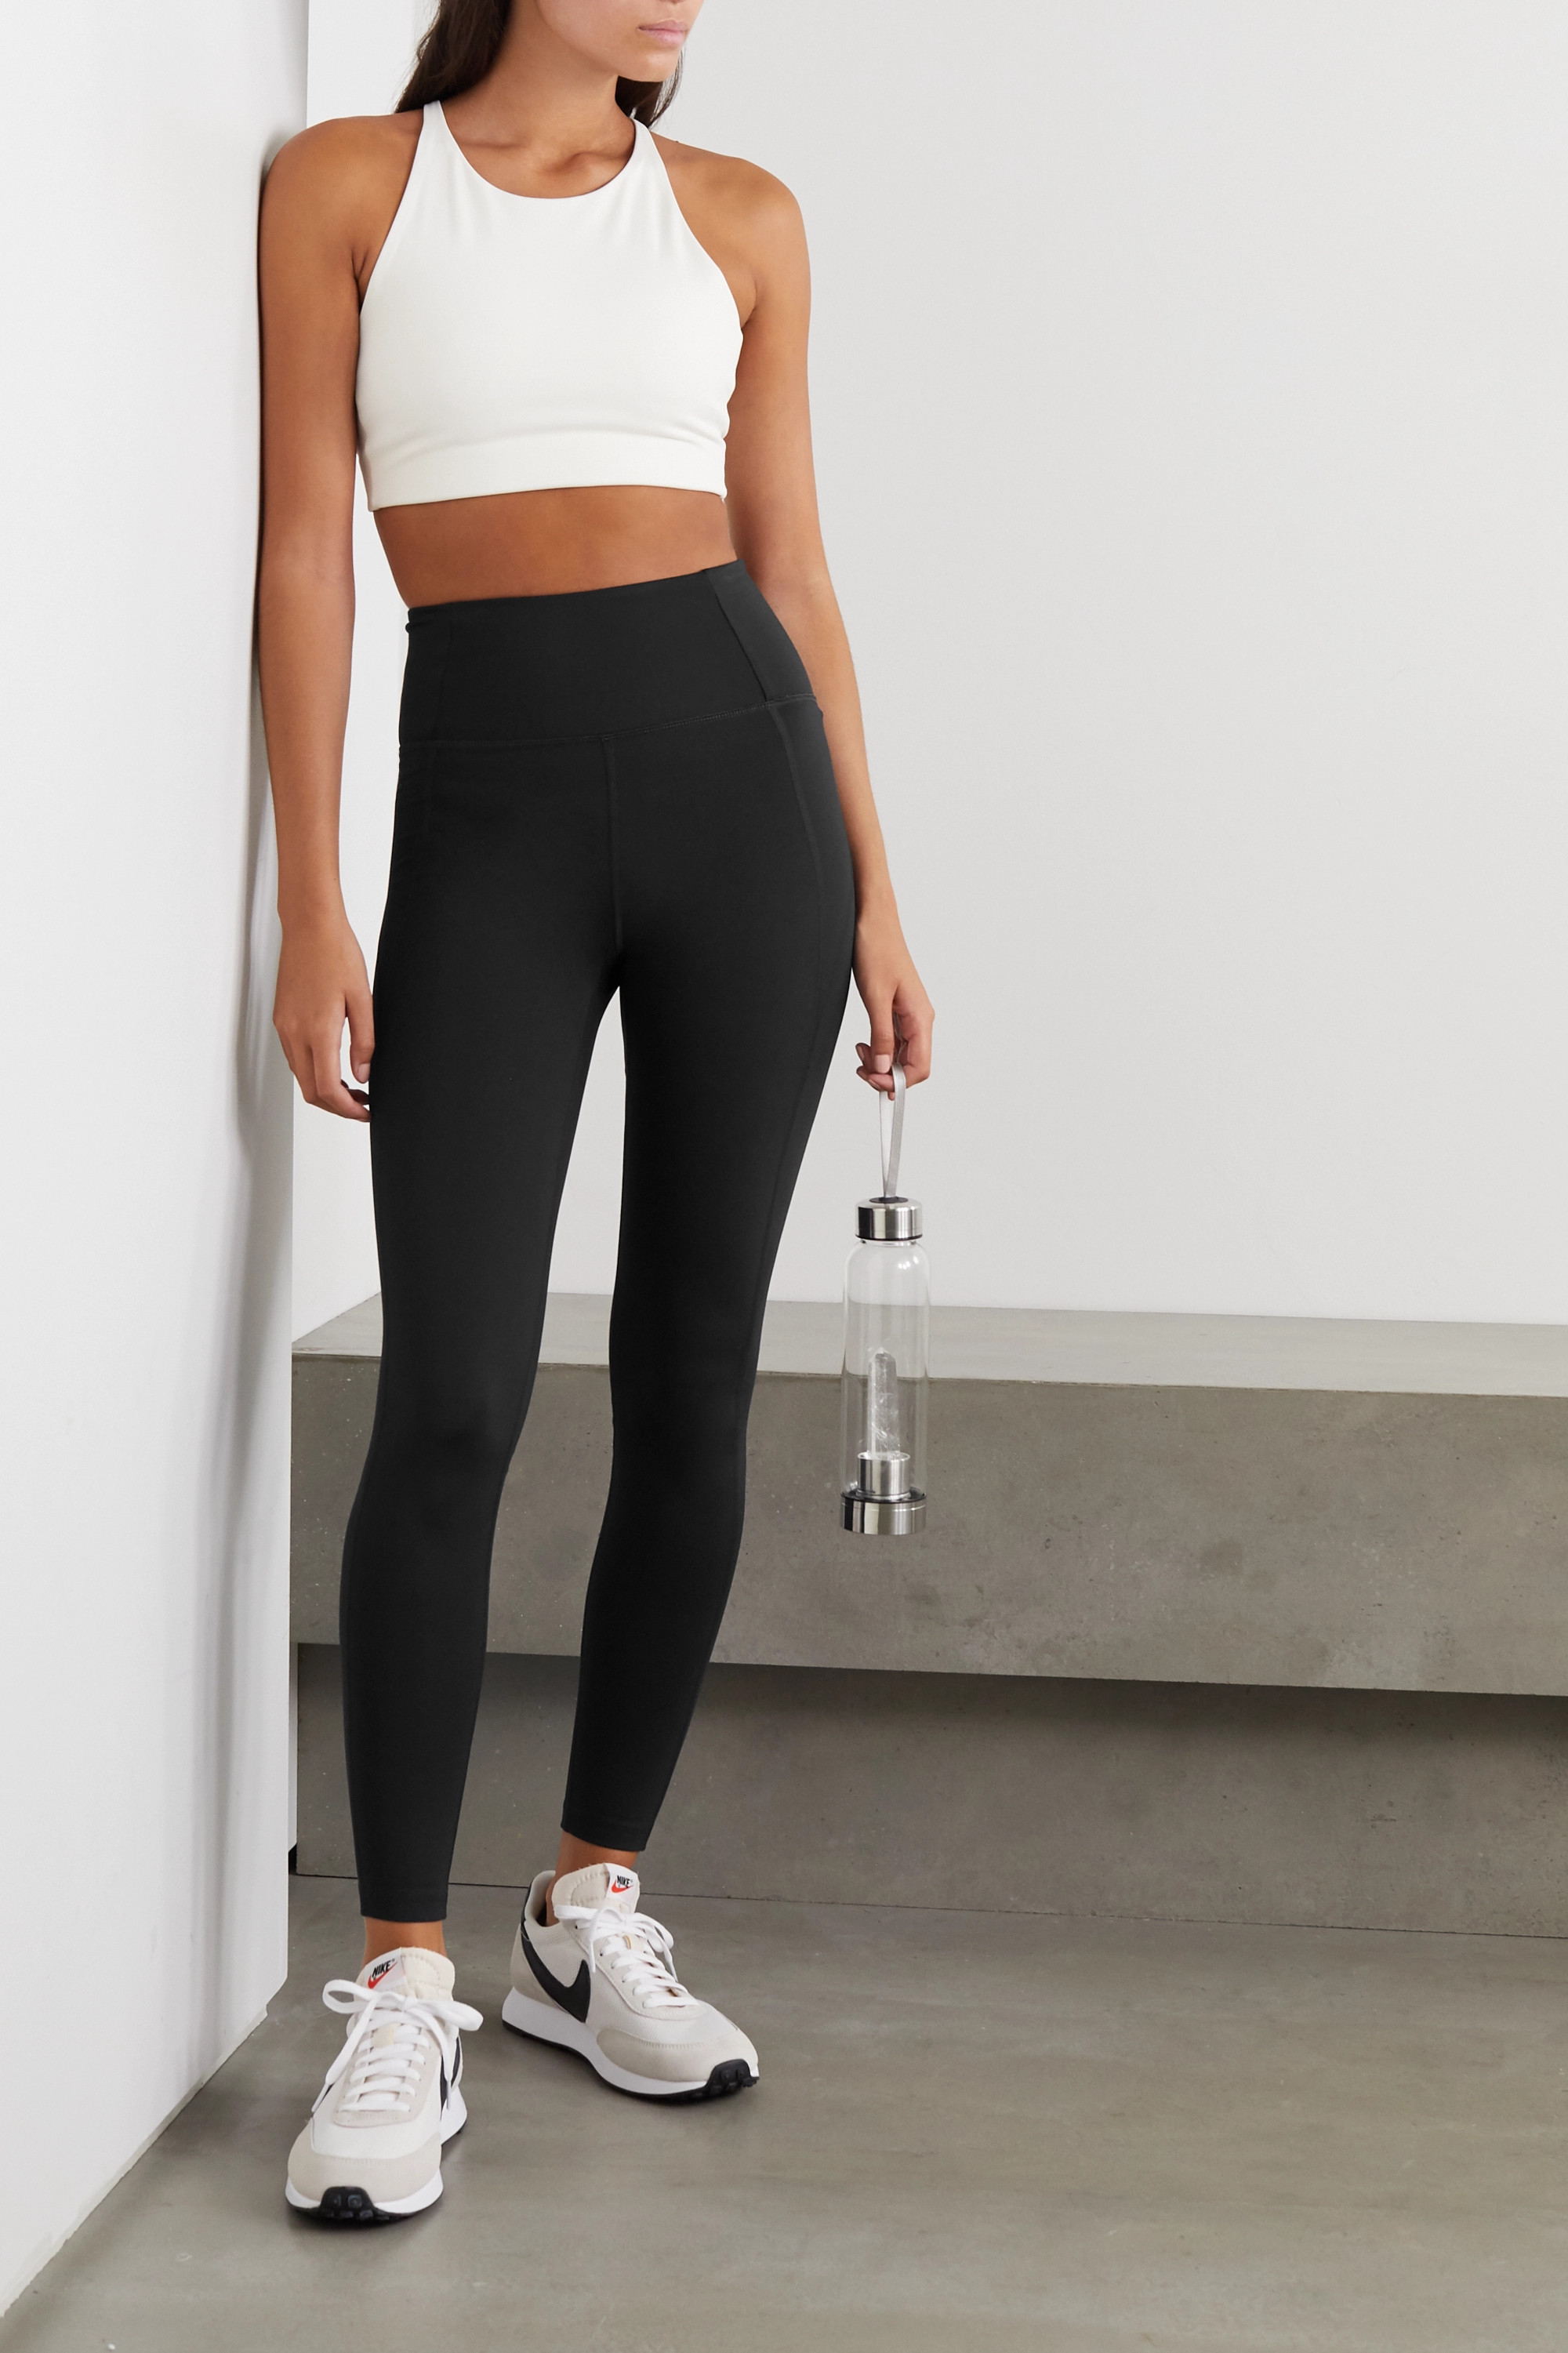 Girlfriend Collective Legging stretch Compressive